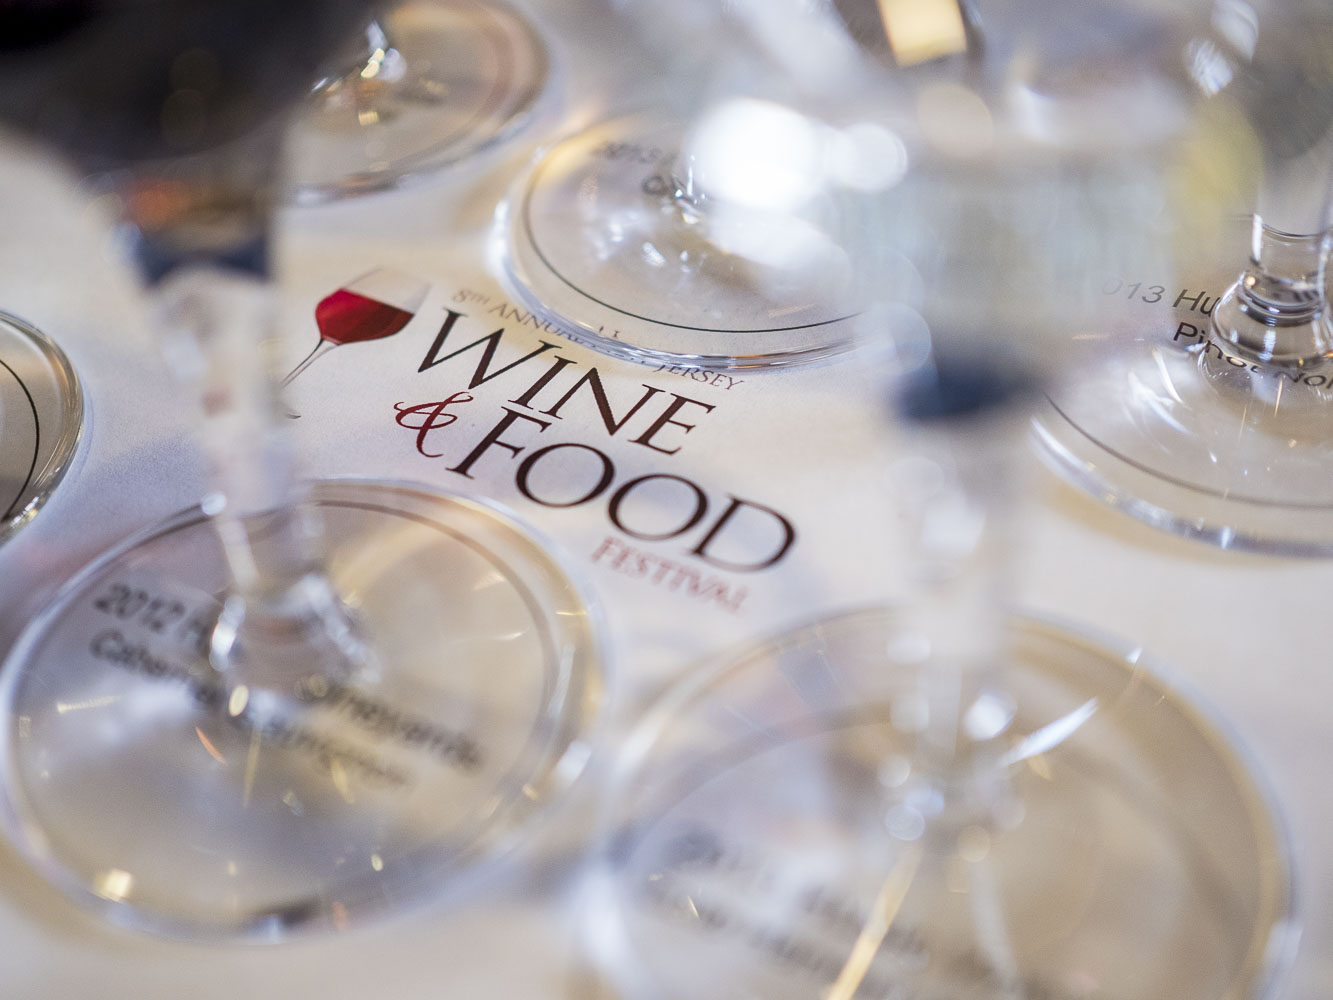 NJWFF Wine glasses on logo